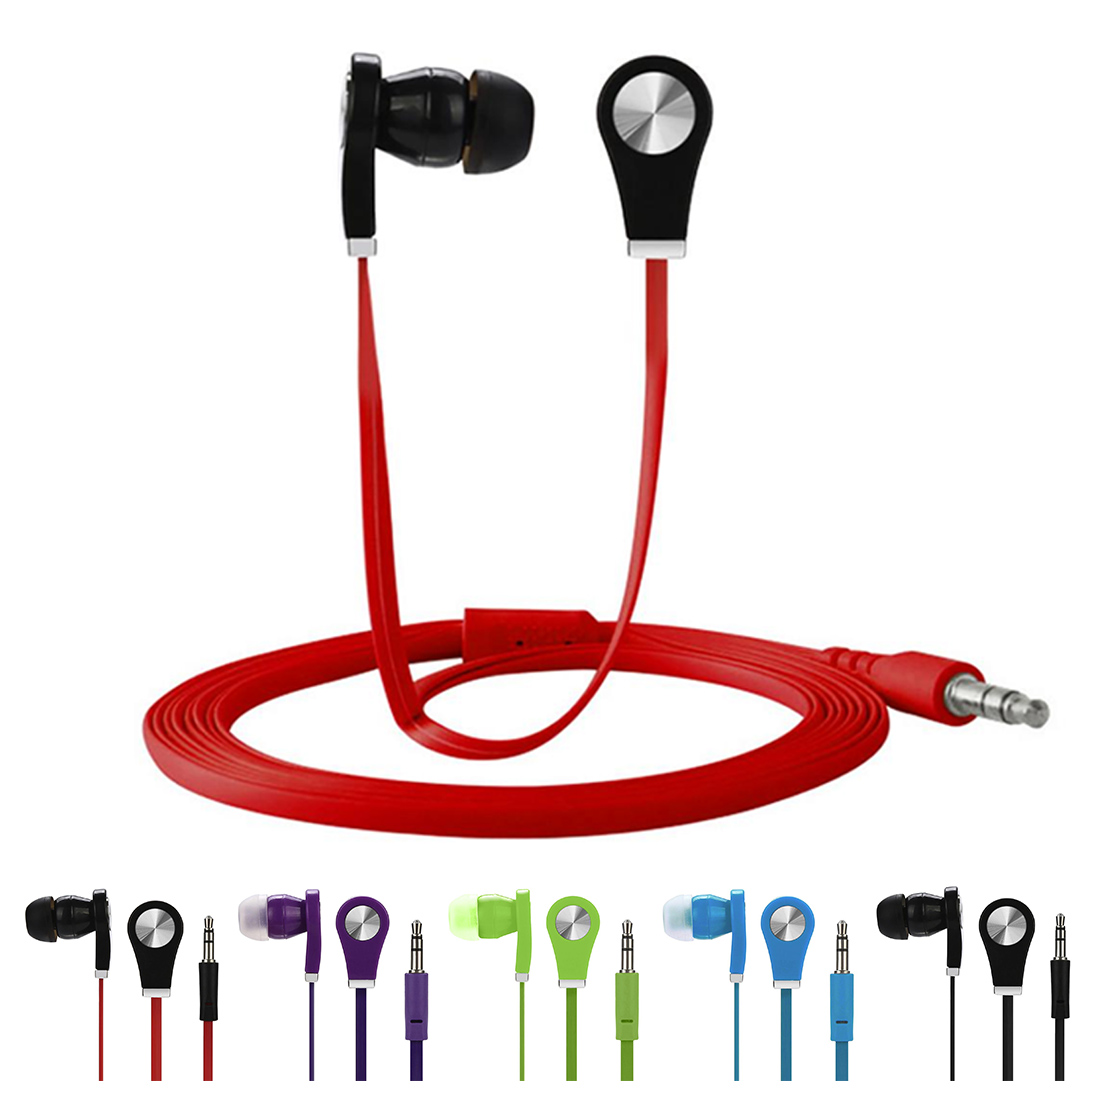 Cheap Earphone In-ear Earphone Colorful Headset Hifi Earbuds Bass Earphones High Quality Ear Phones For Phone image